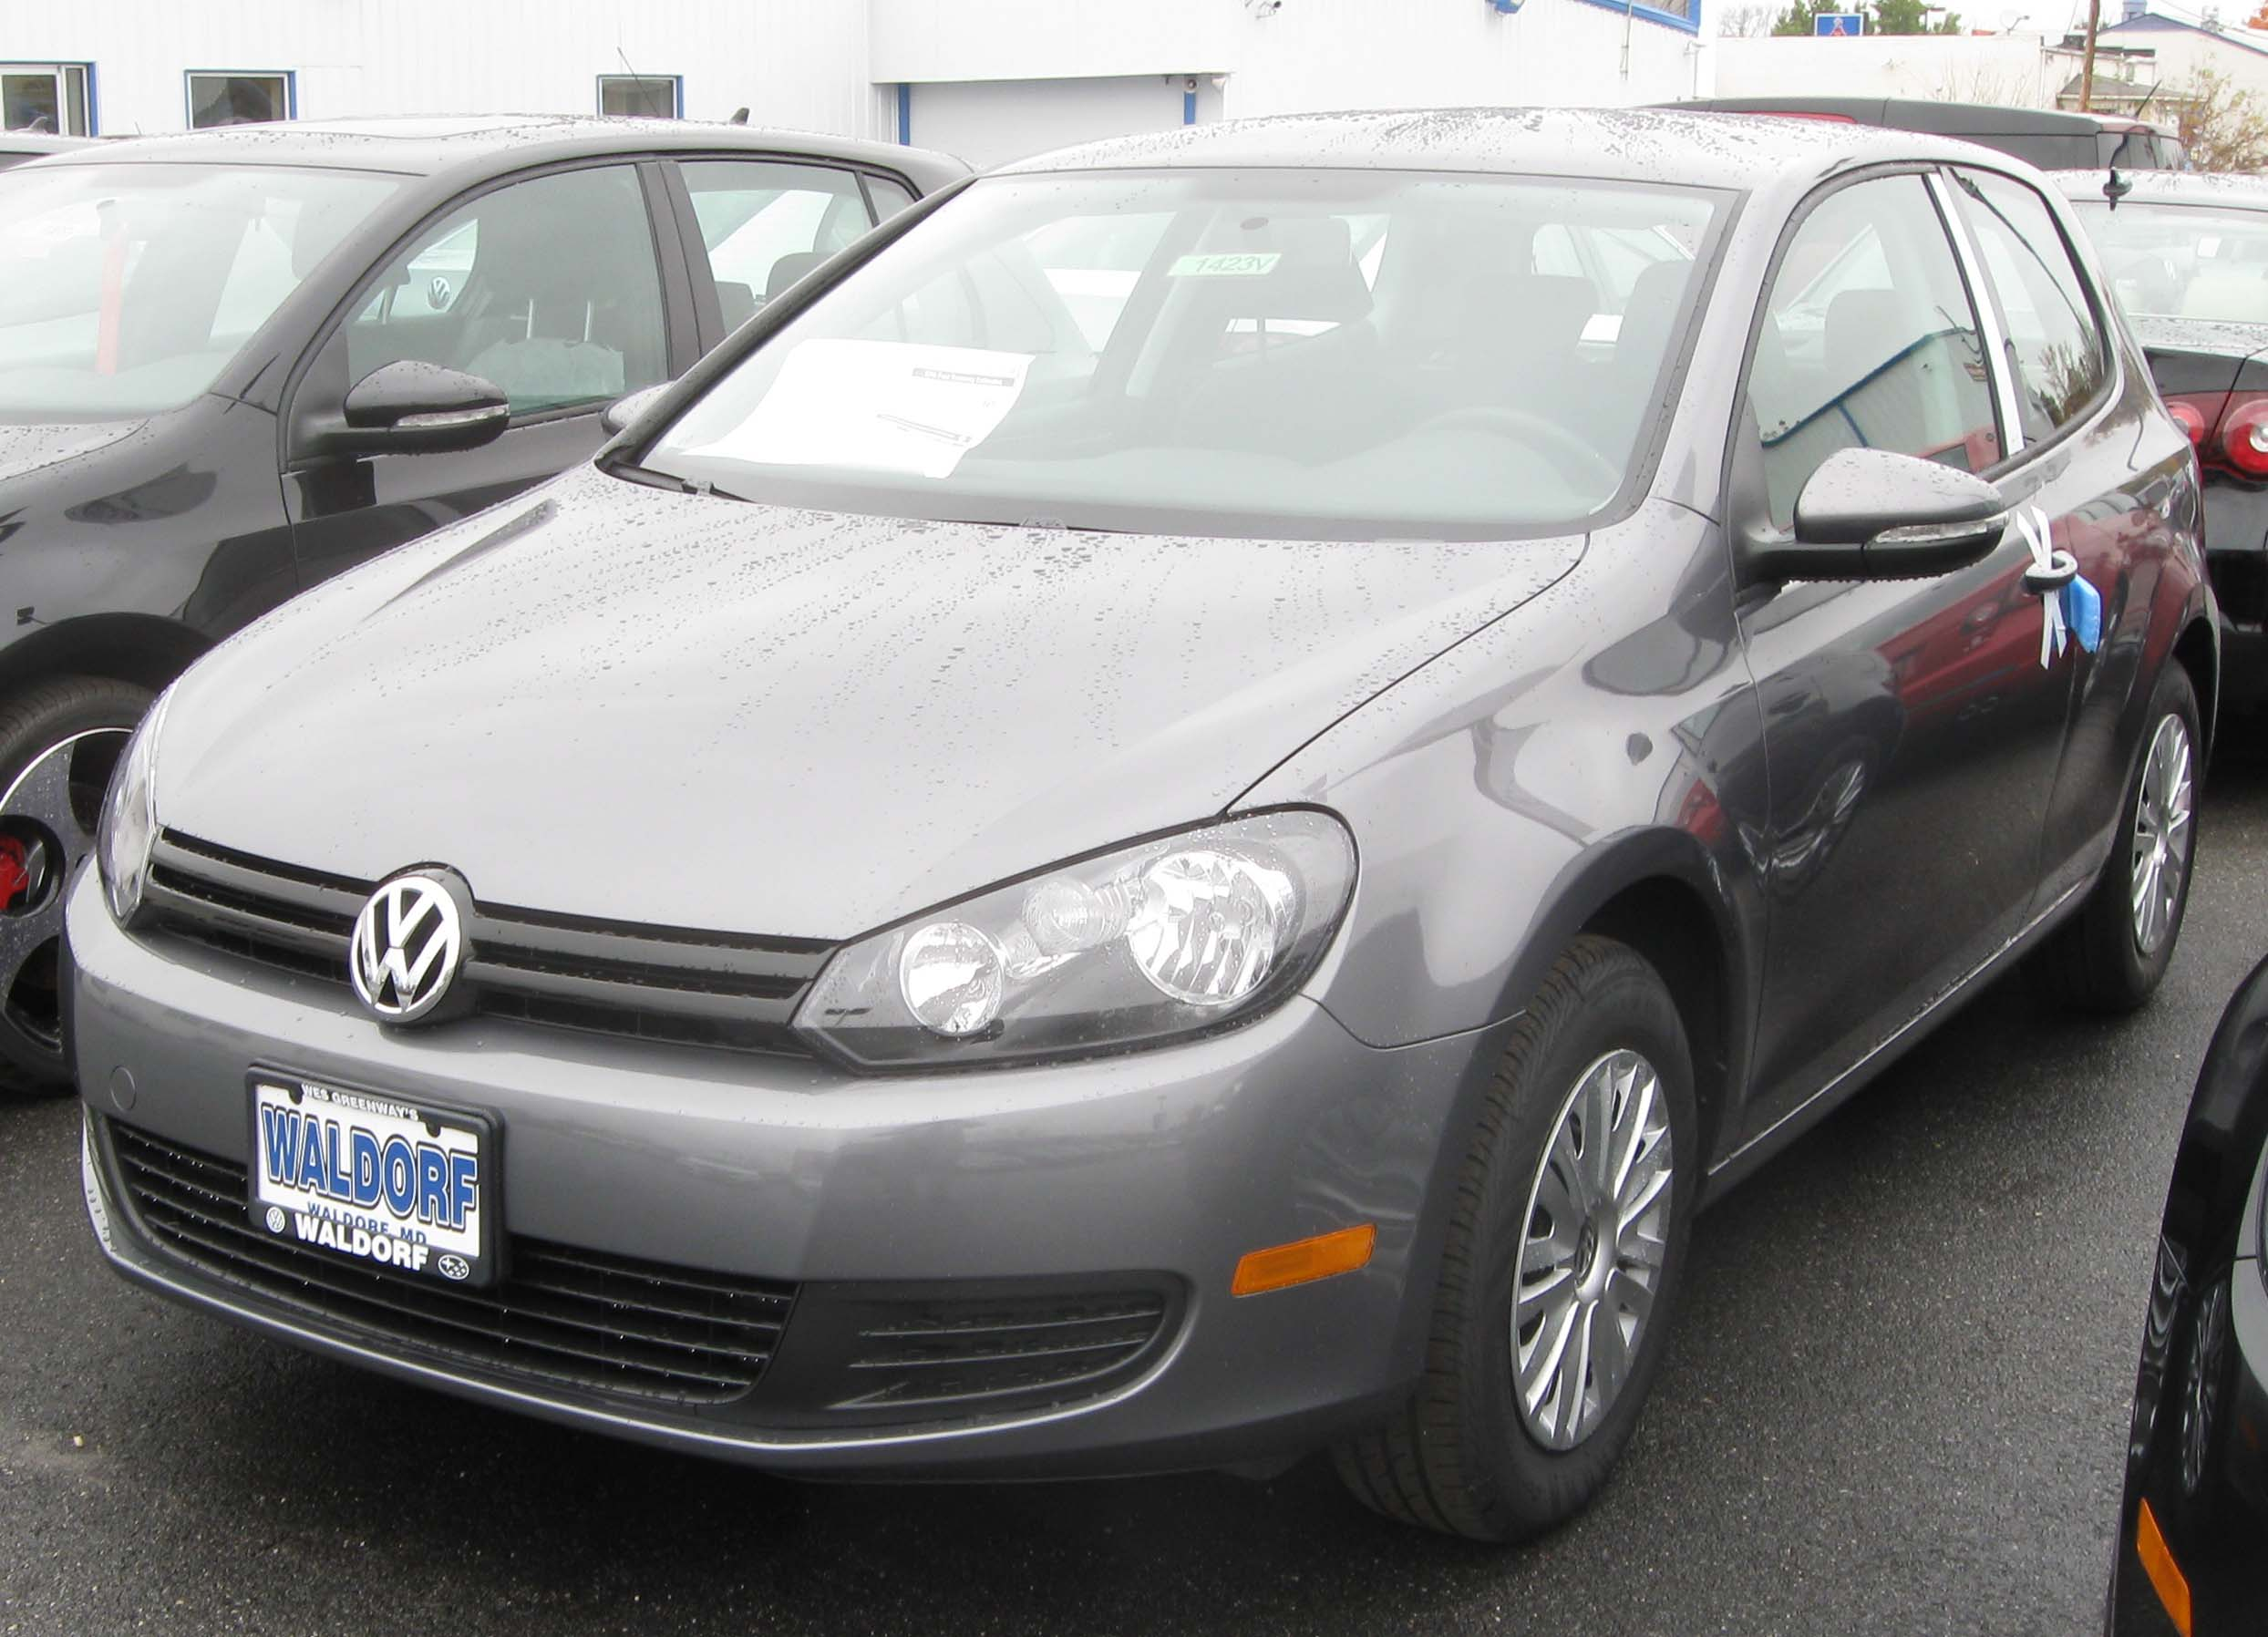 File:2010 Volkswagen Golf 2-door -- 10-31-2009.jpg - Wikimedia Commons